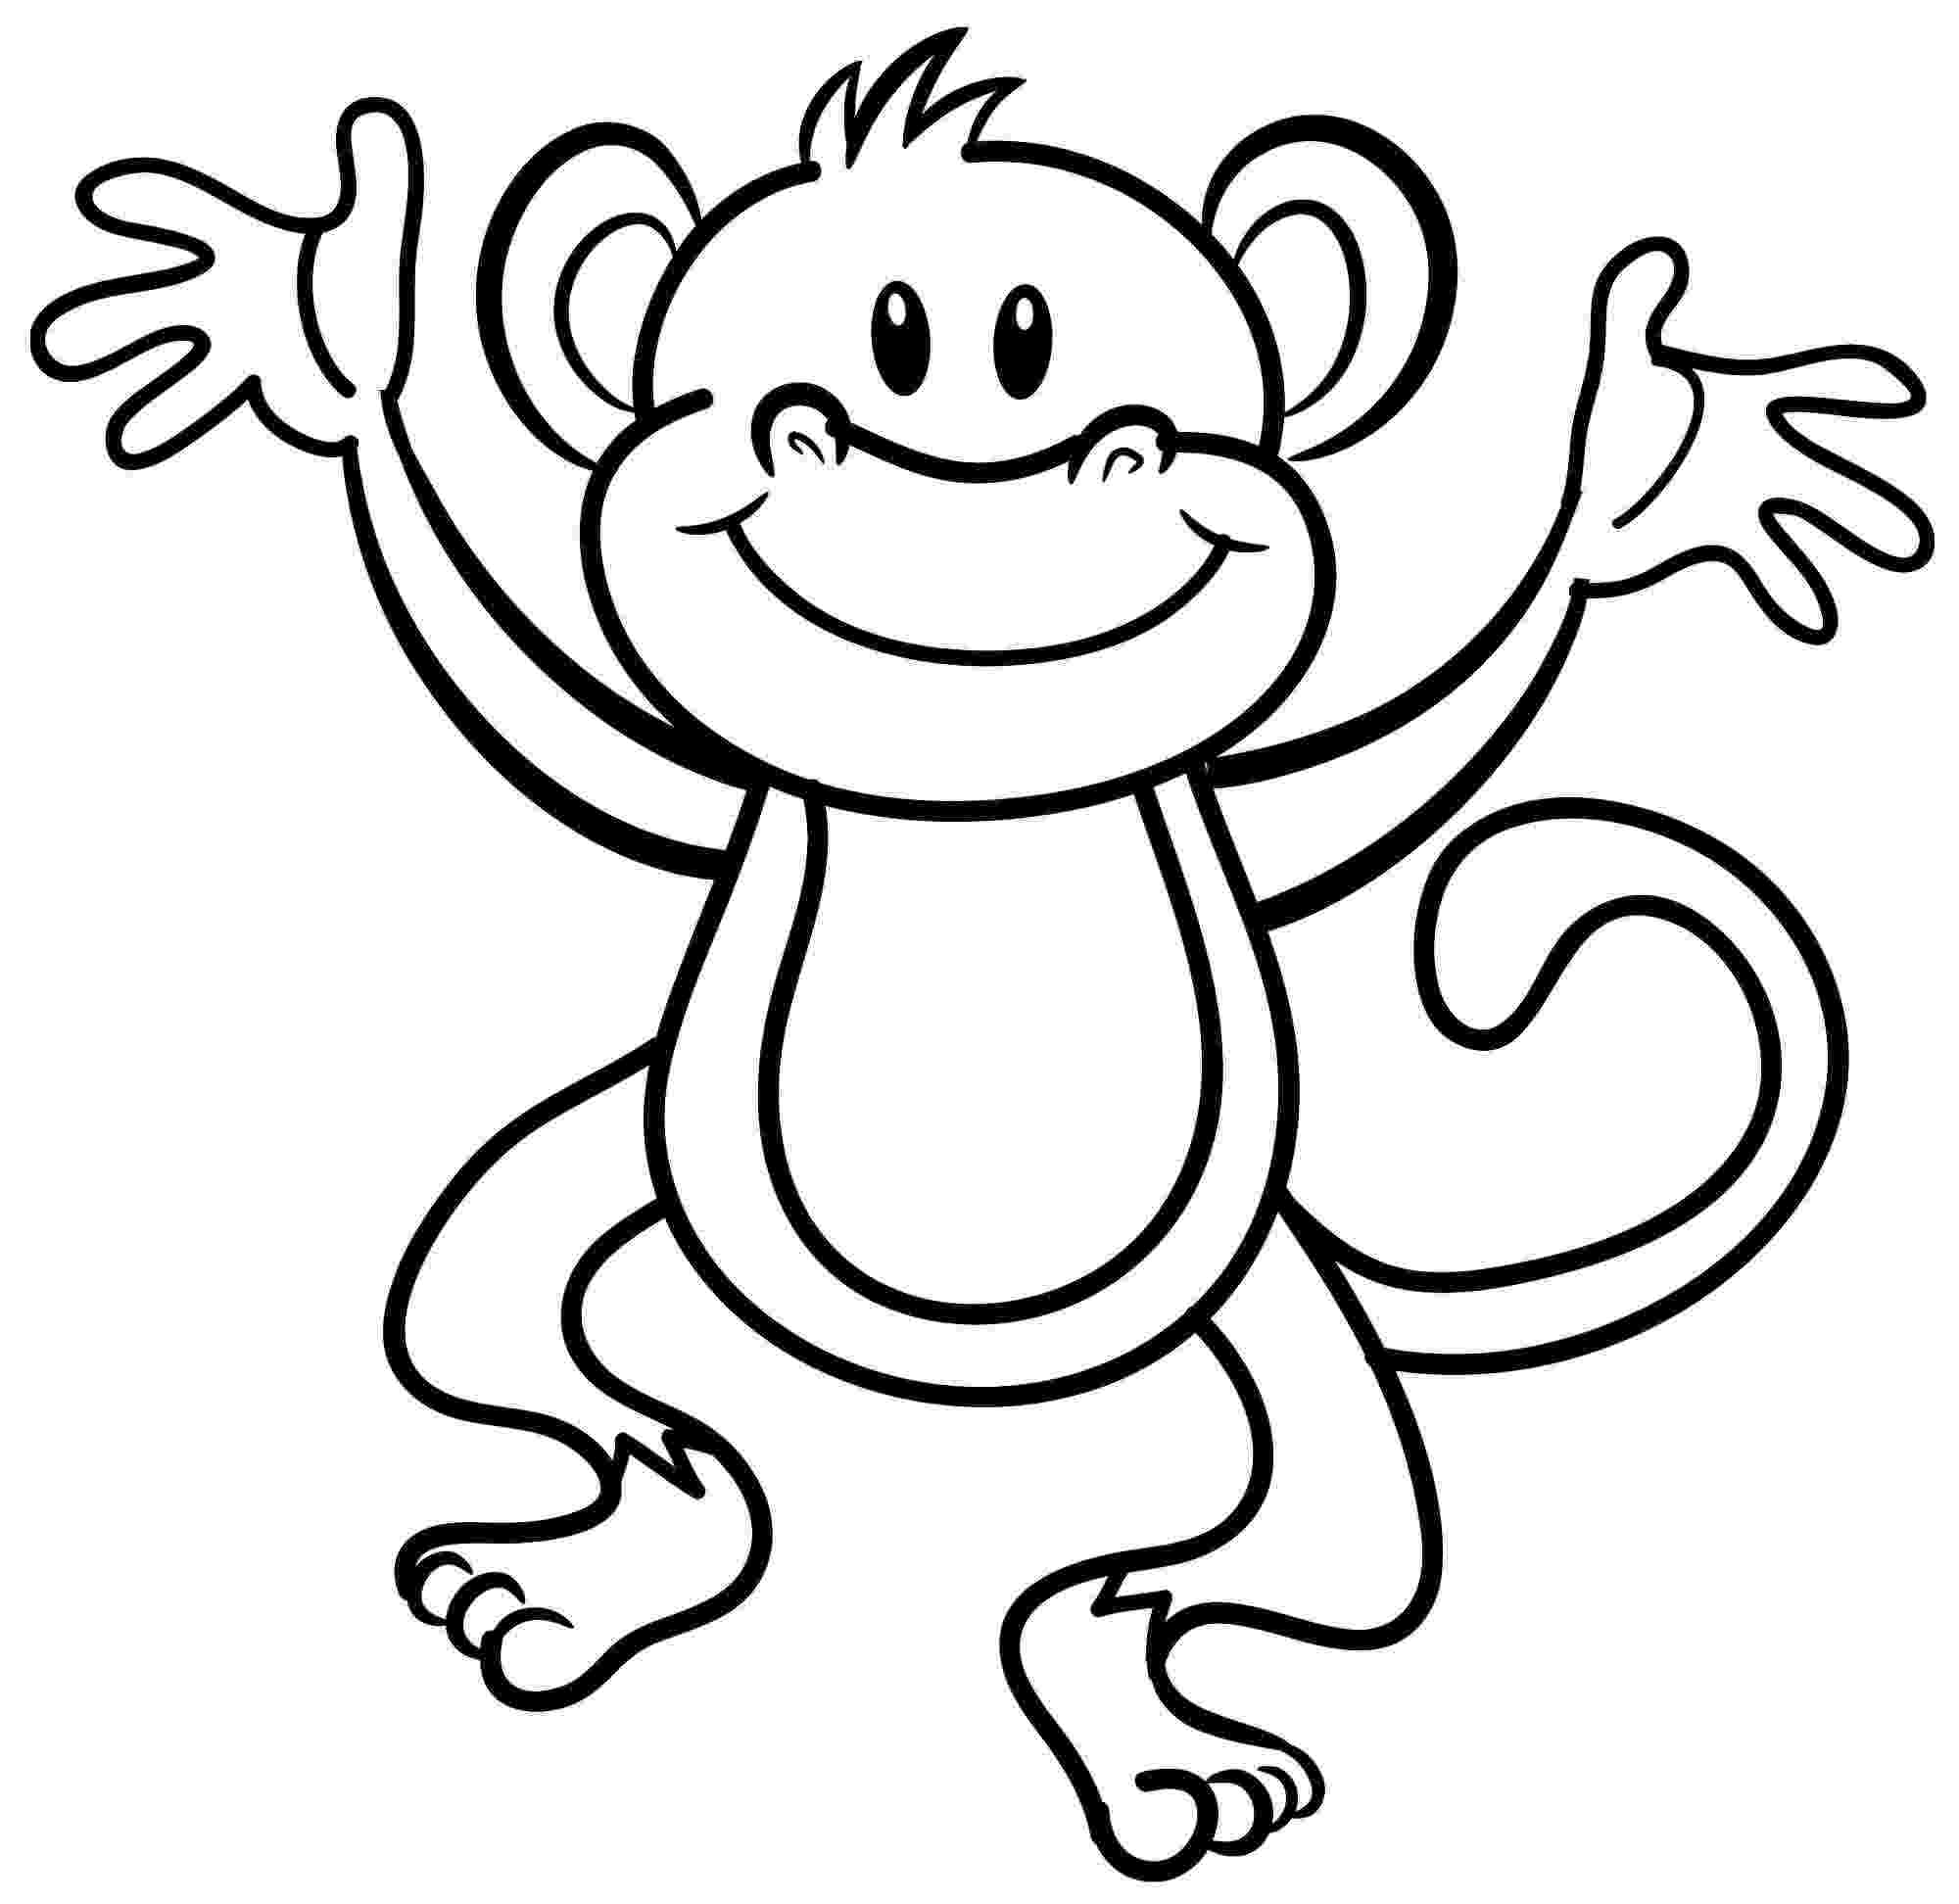 monkey colouring page top 25 free printable monkey coloring pages for kids page monkey colouring